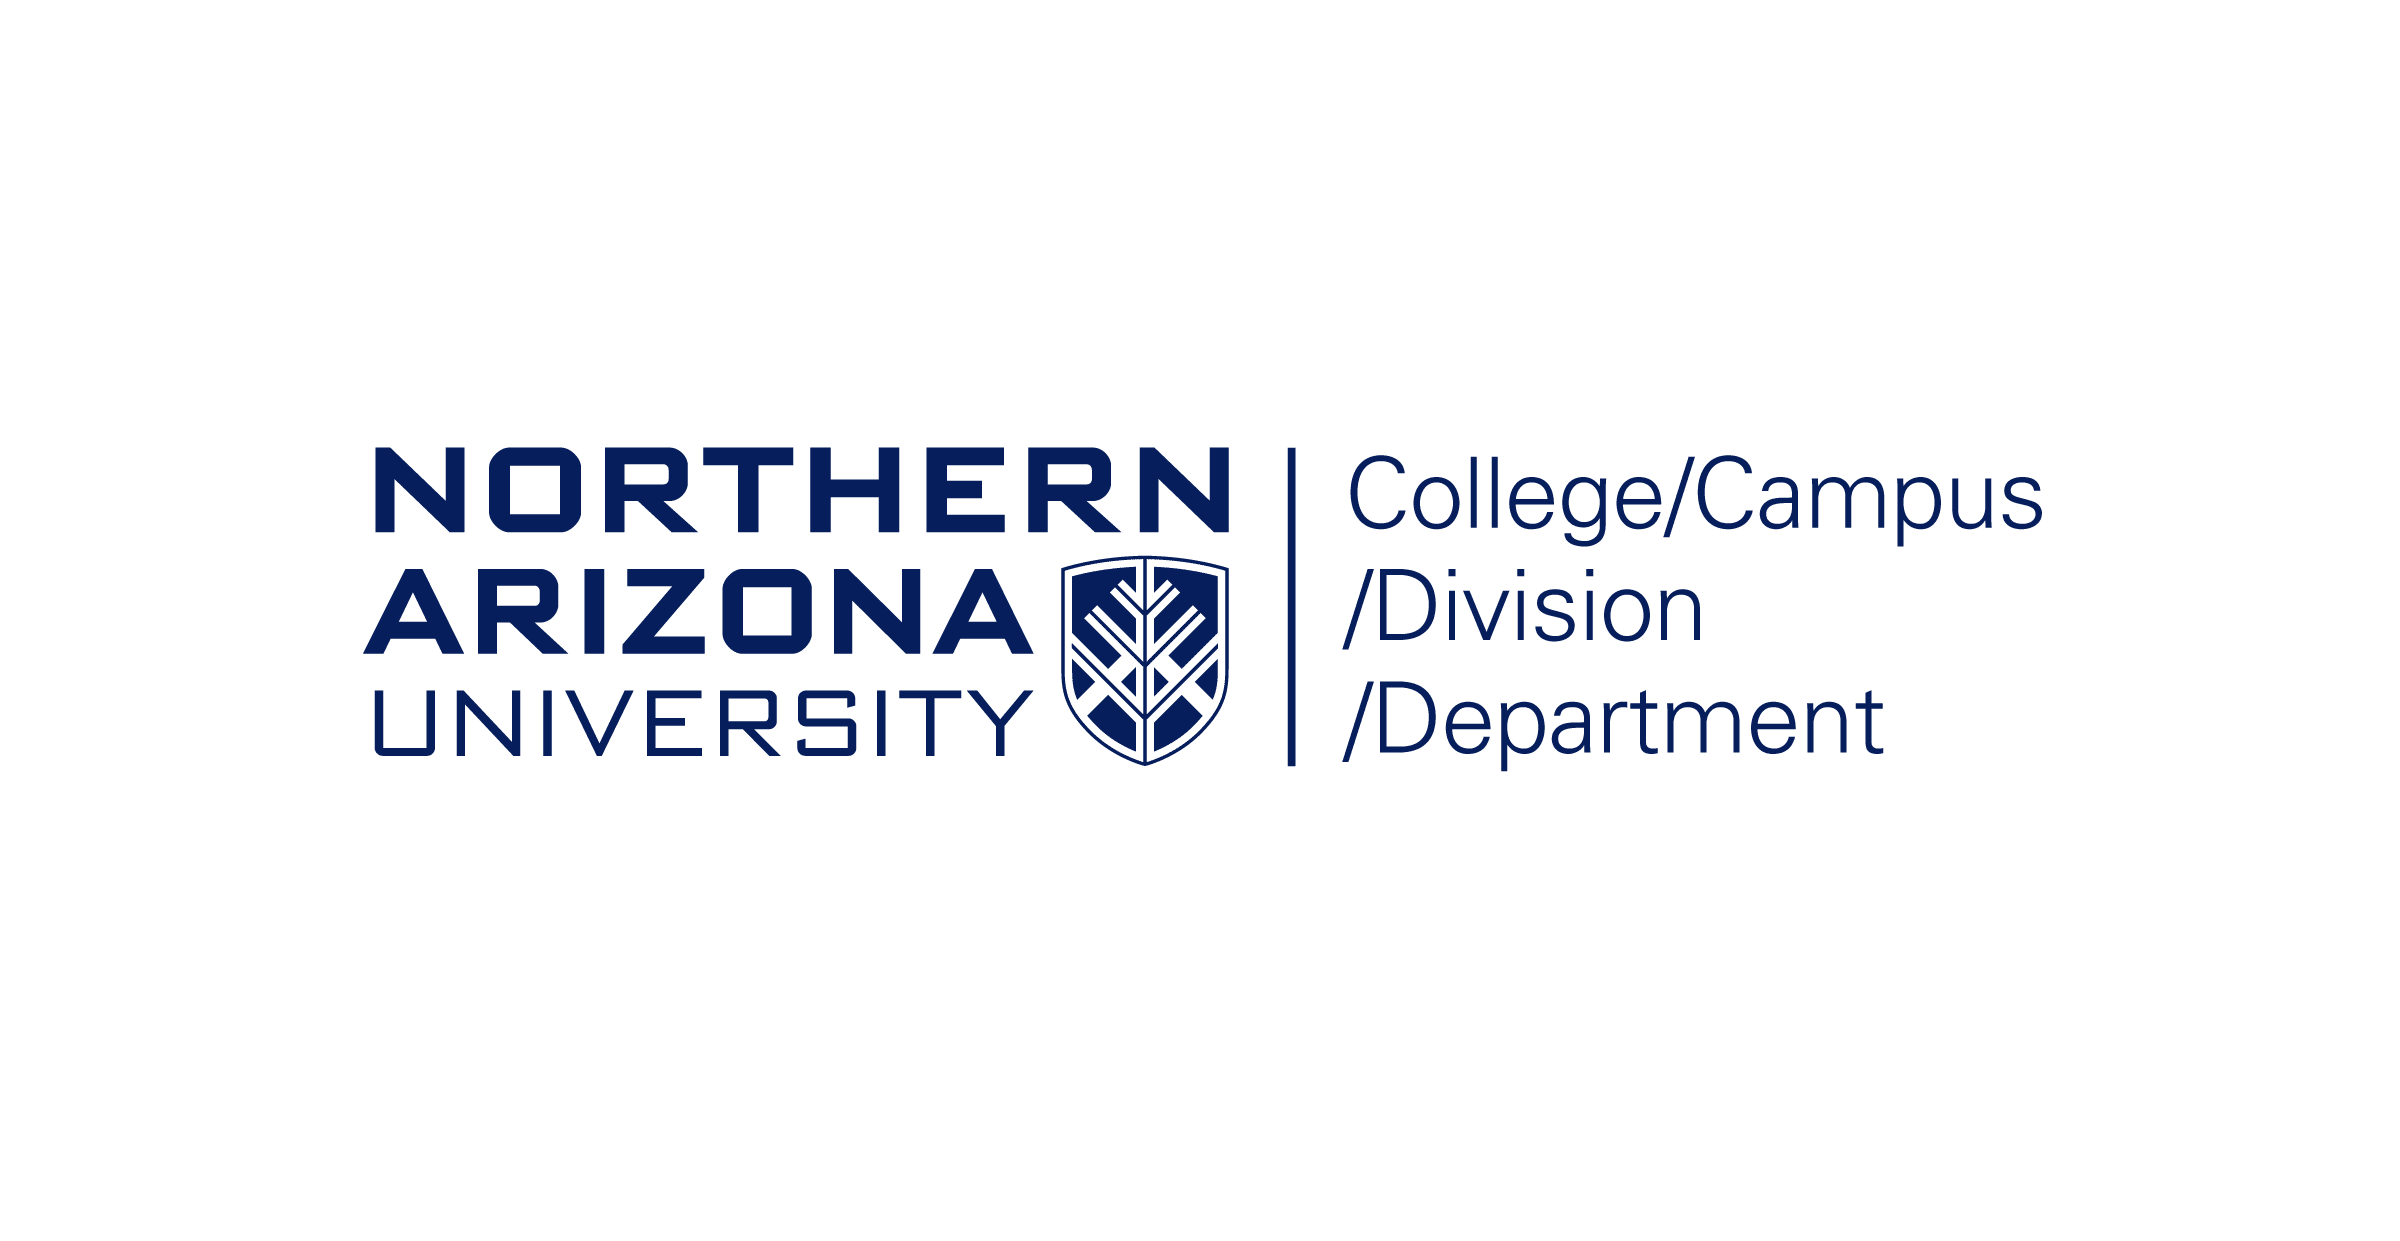 The Northern Arizona University primary college, campus, division, and non-academic department logo. The logo is divided by a blue vertical line. On the left, the N A U logo is stacked vertically with the N A U shield in the bottom right. On the right, the college, campus, division, and department text are separated by forward slashes and stacked vertically. The text is blue over a white background.